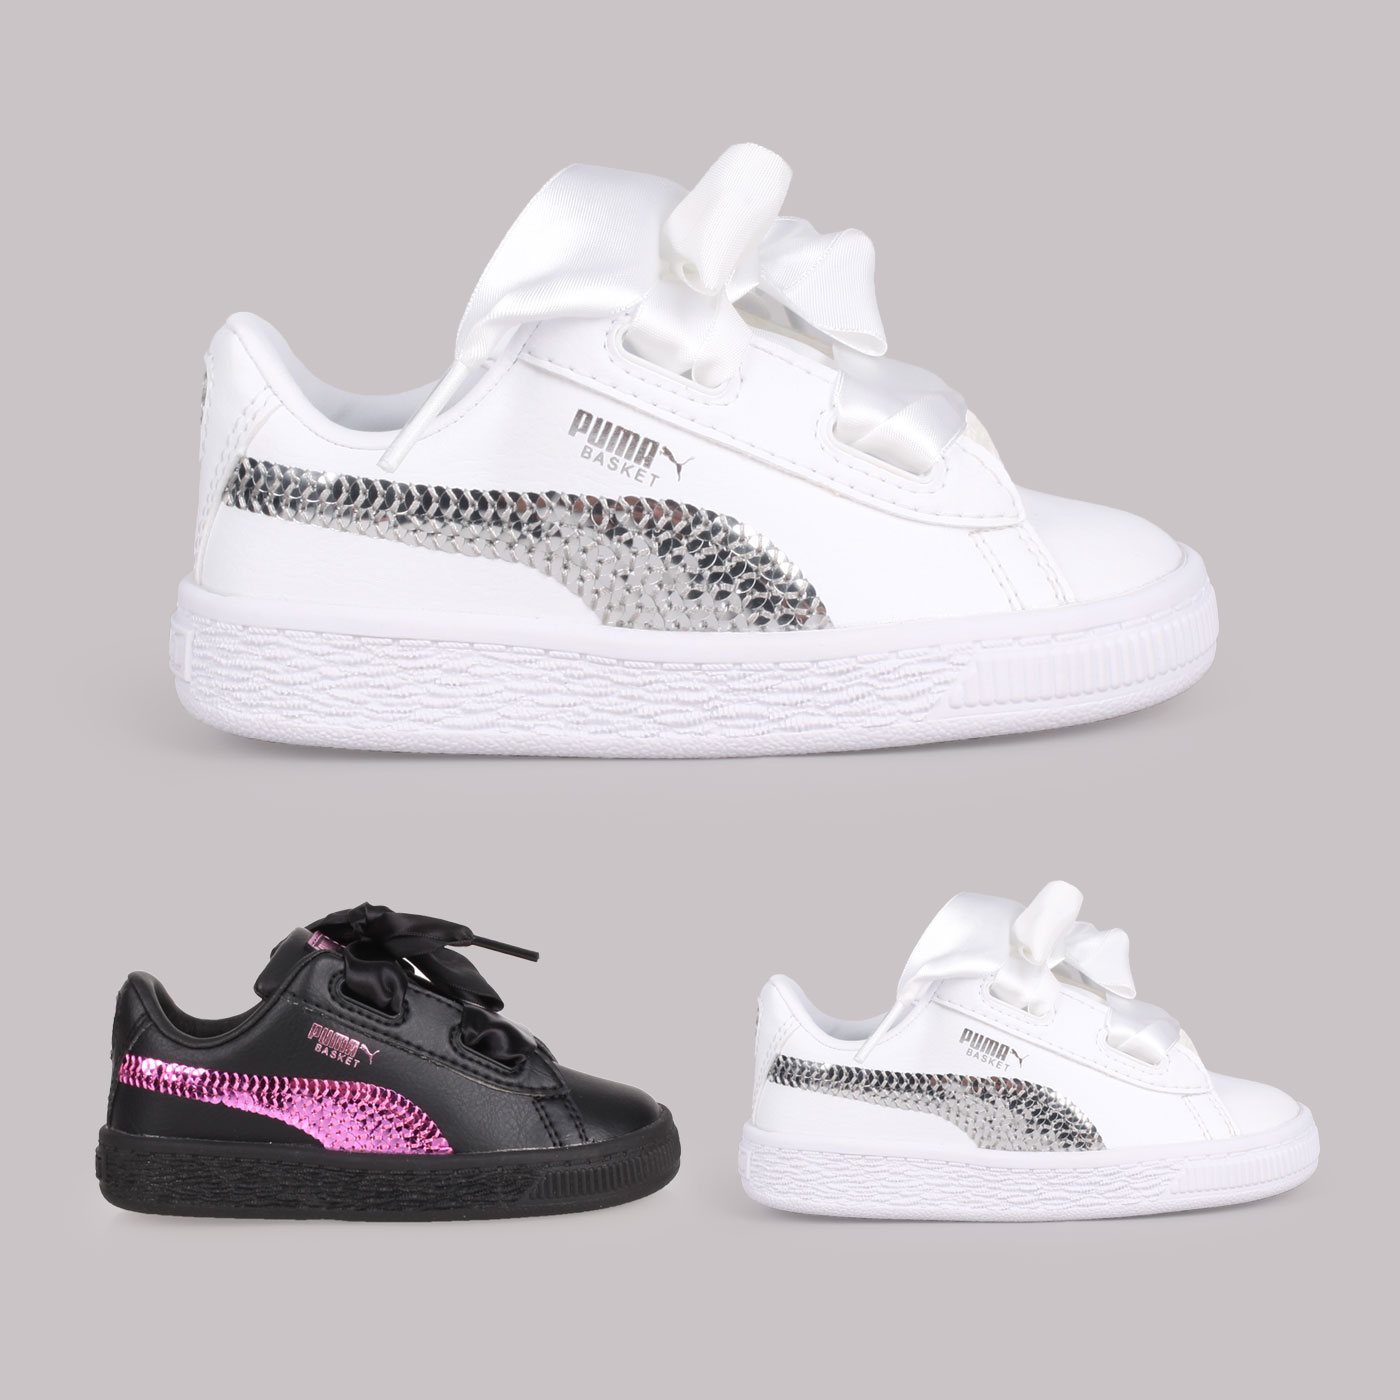 PUMA 兒童休閒運動鞋  @Basket Heart Bling Inf@36684901